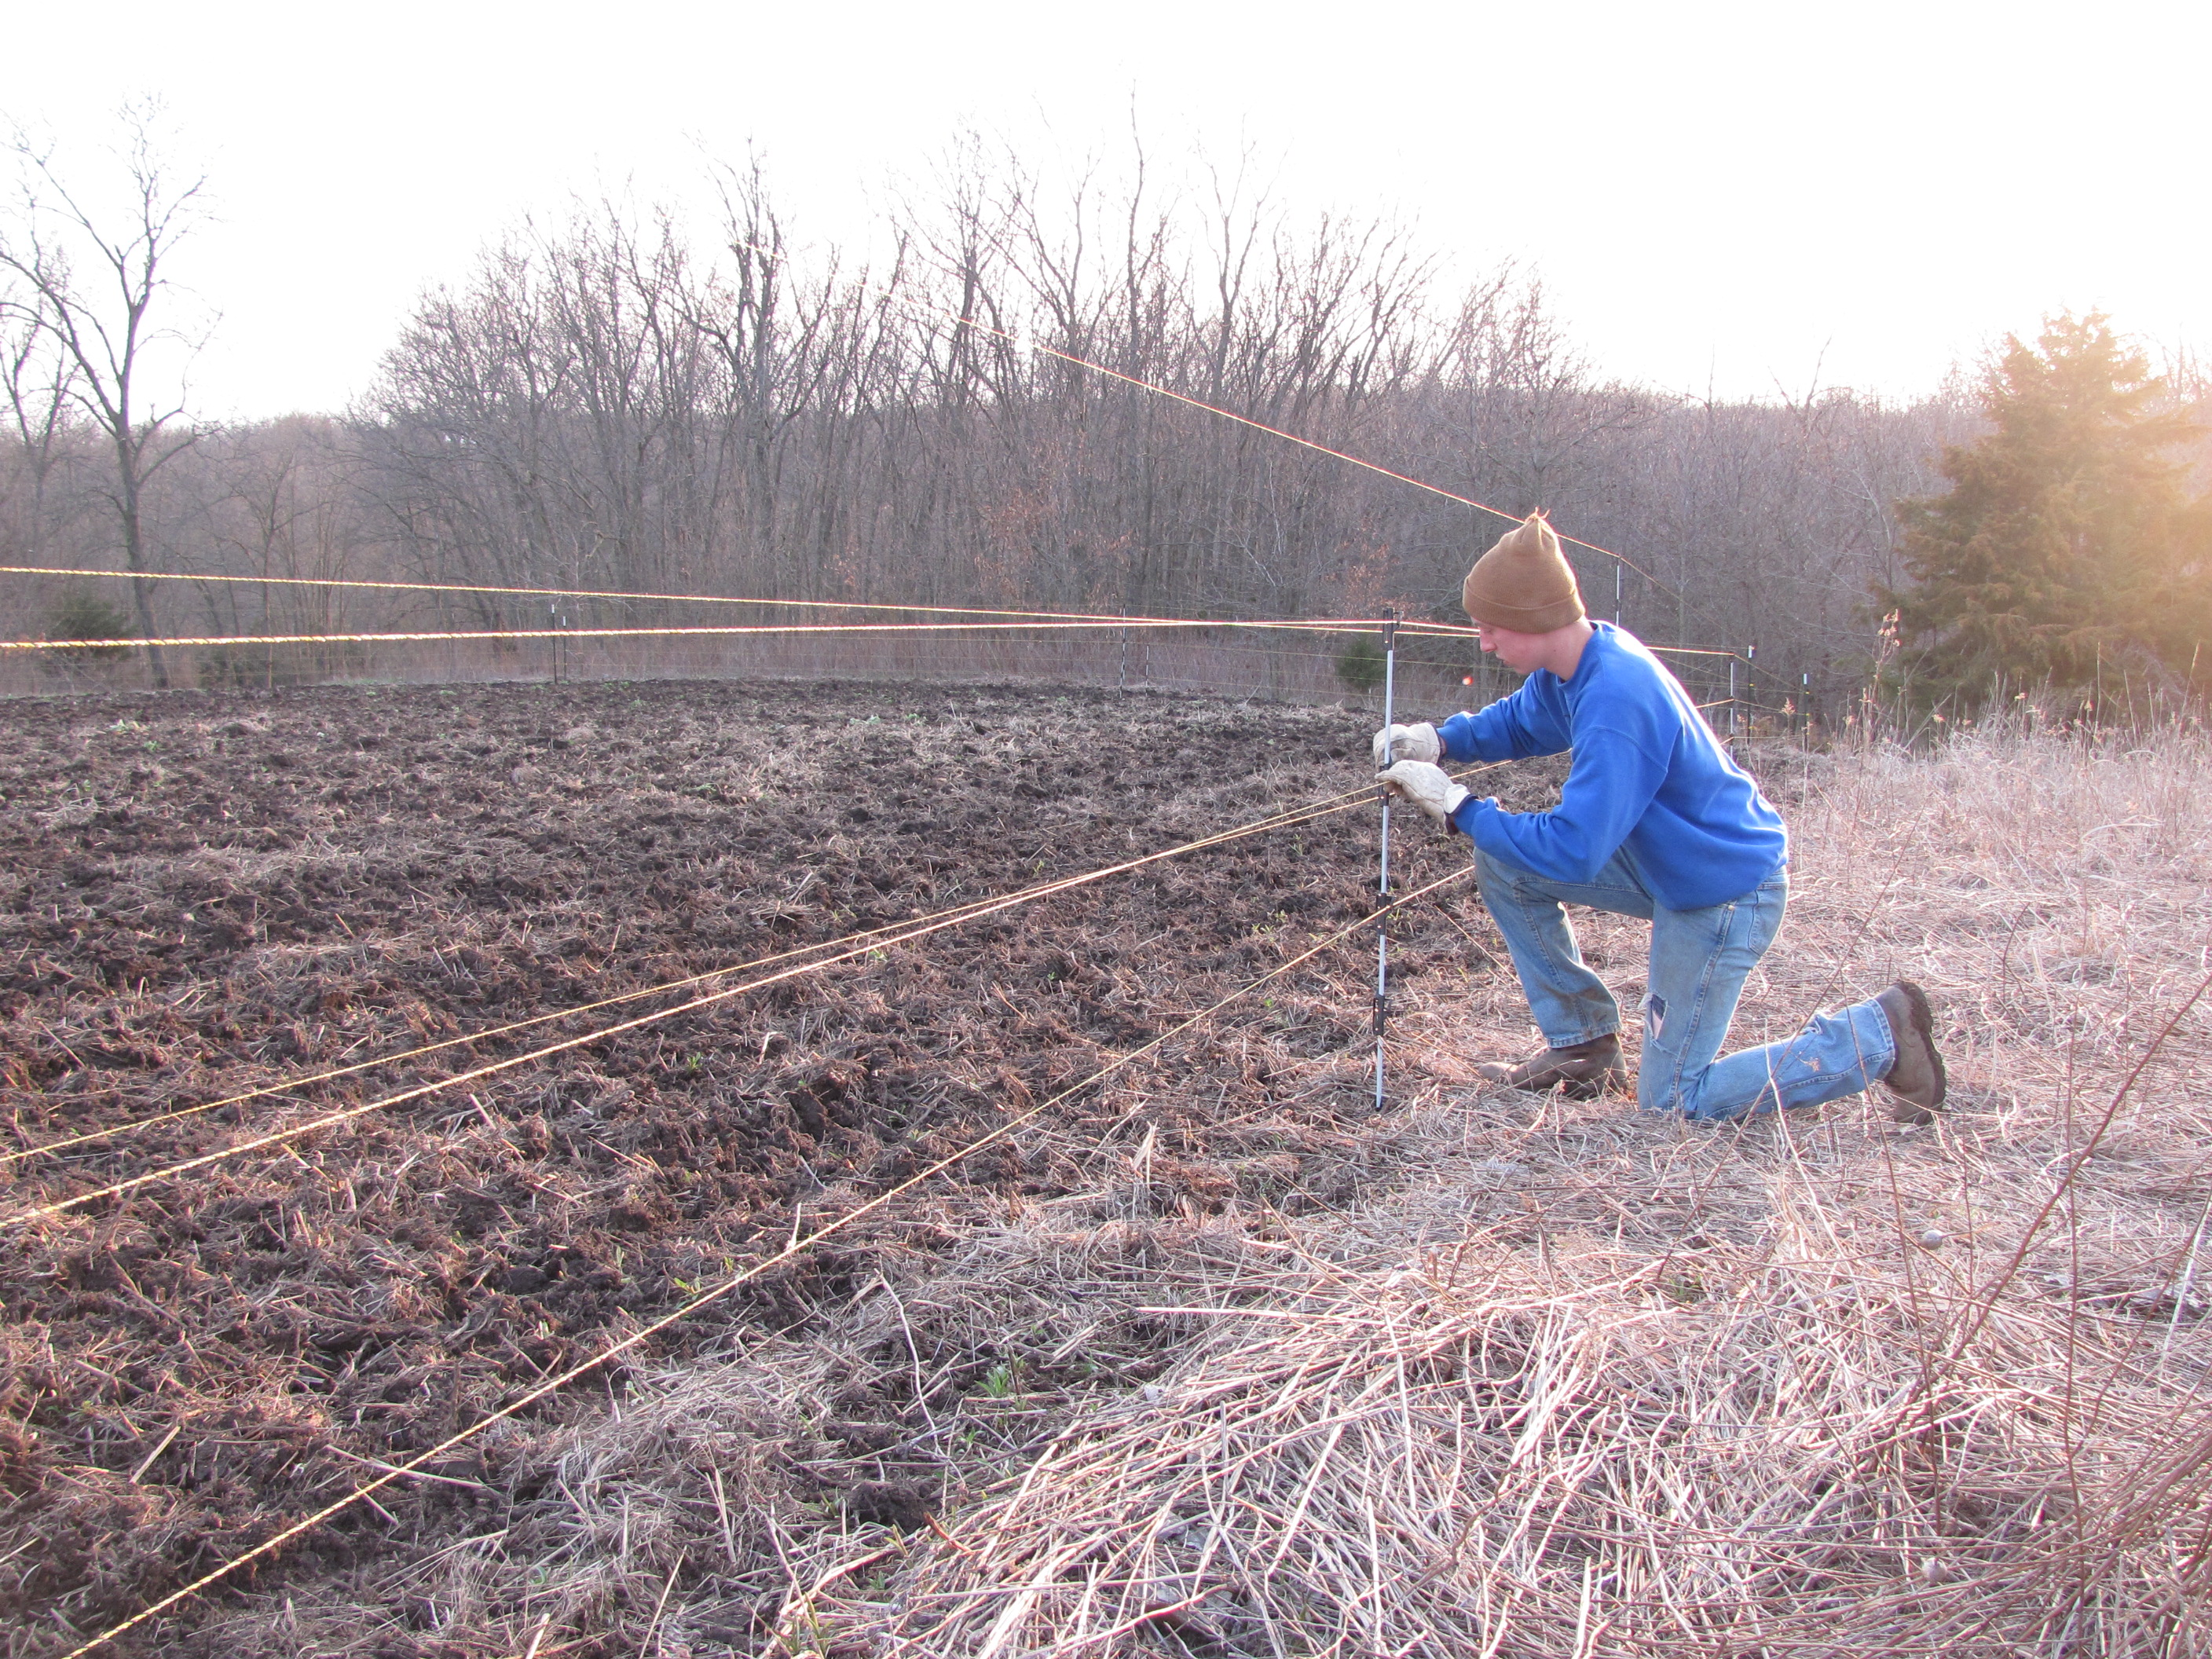 Here is Forest putting the finishing touches on our electric fence to ironically keep out the deer.